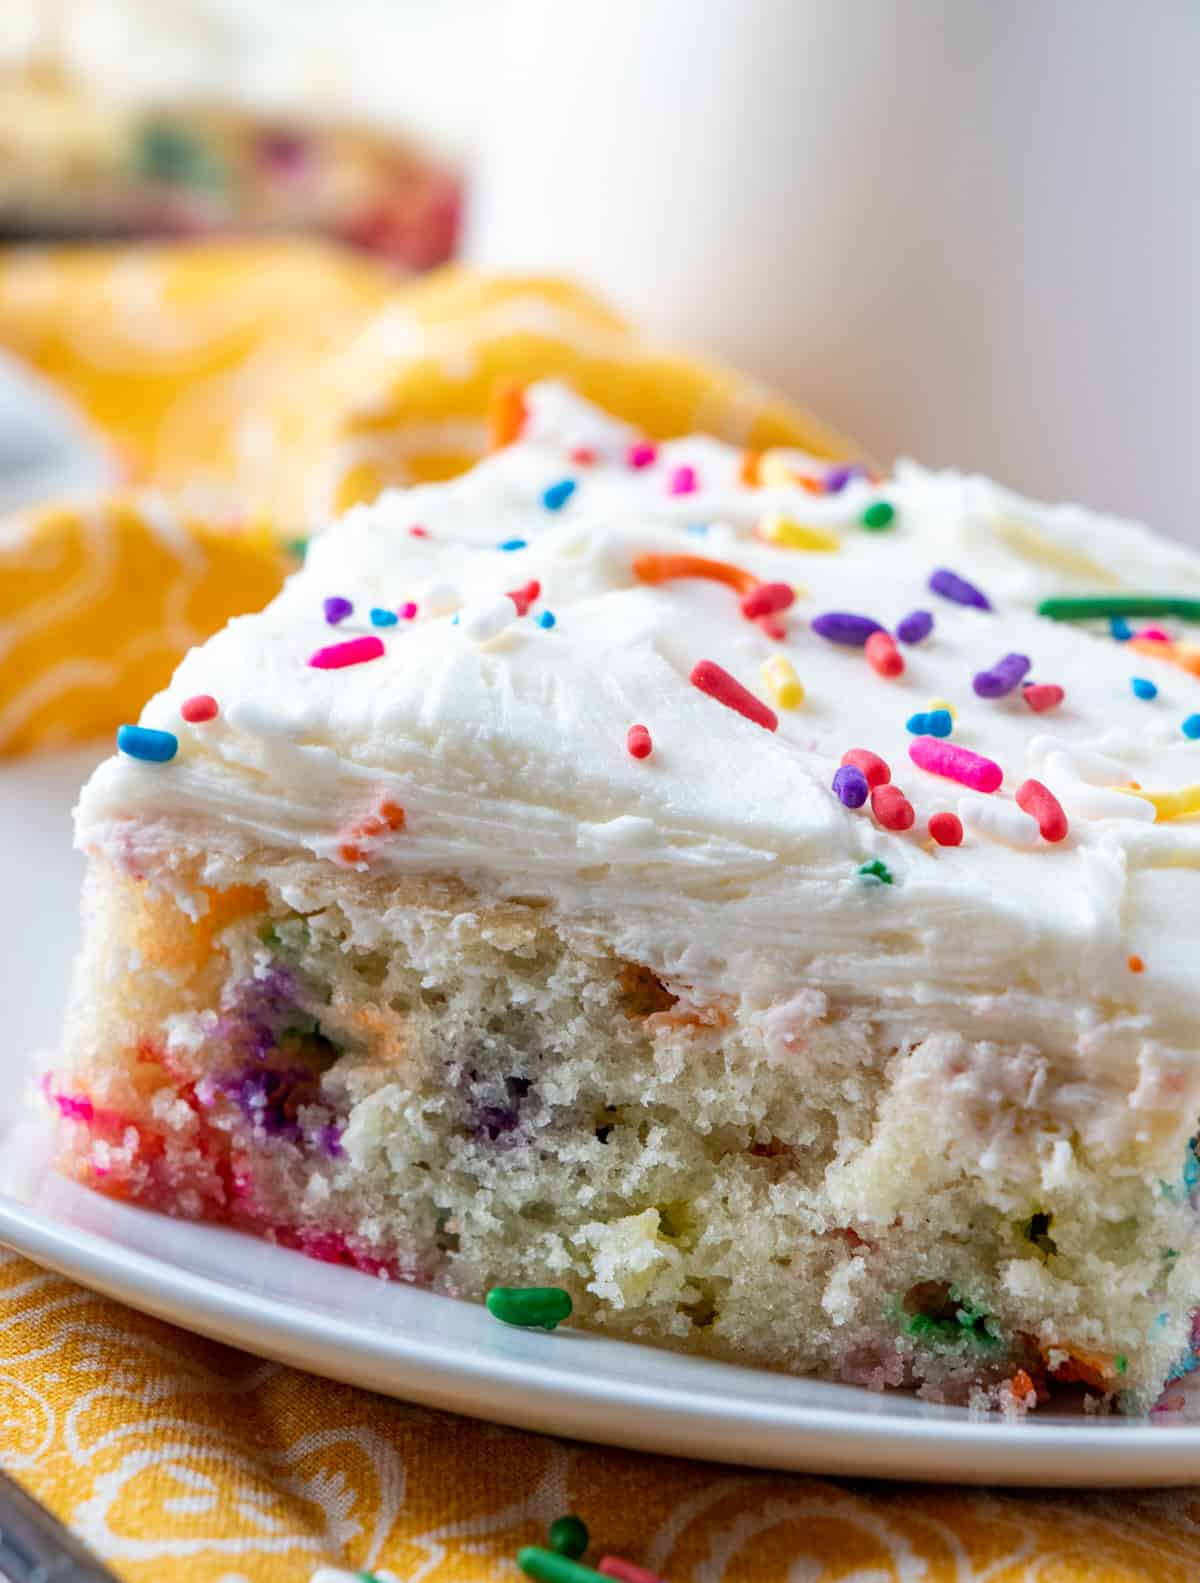 Up close side photo of cake on plate showing sprinkles in the cake